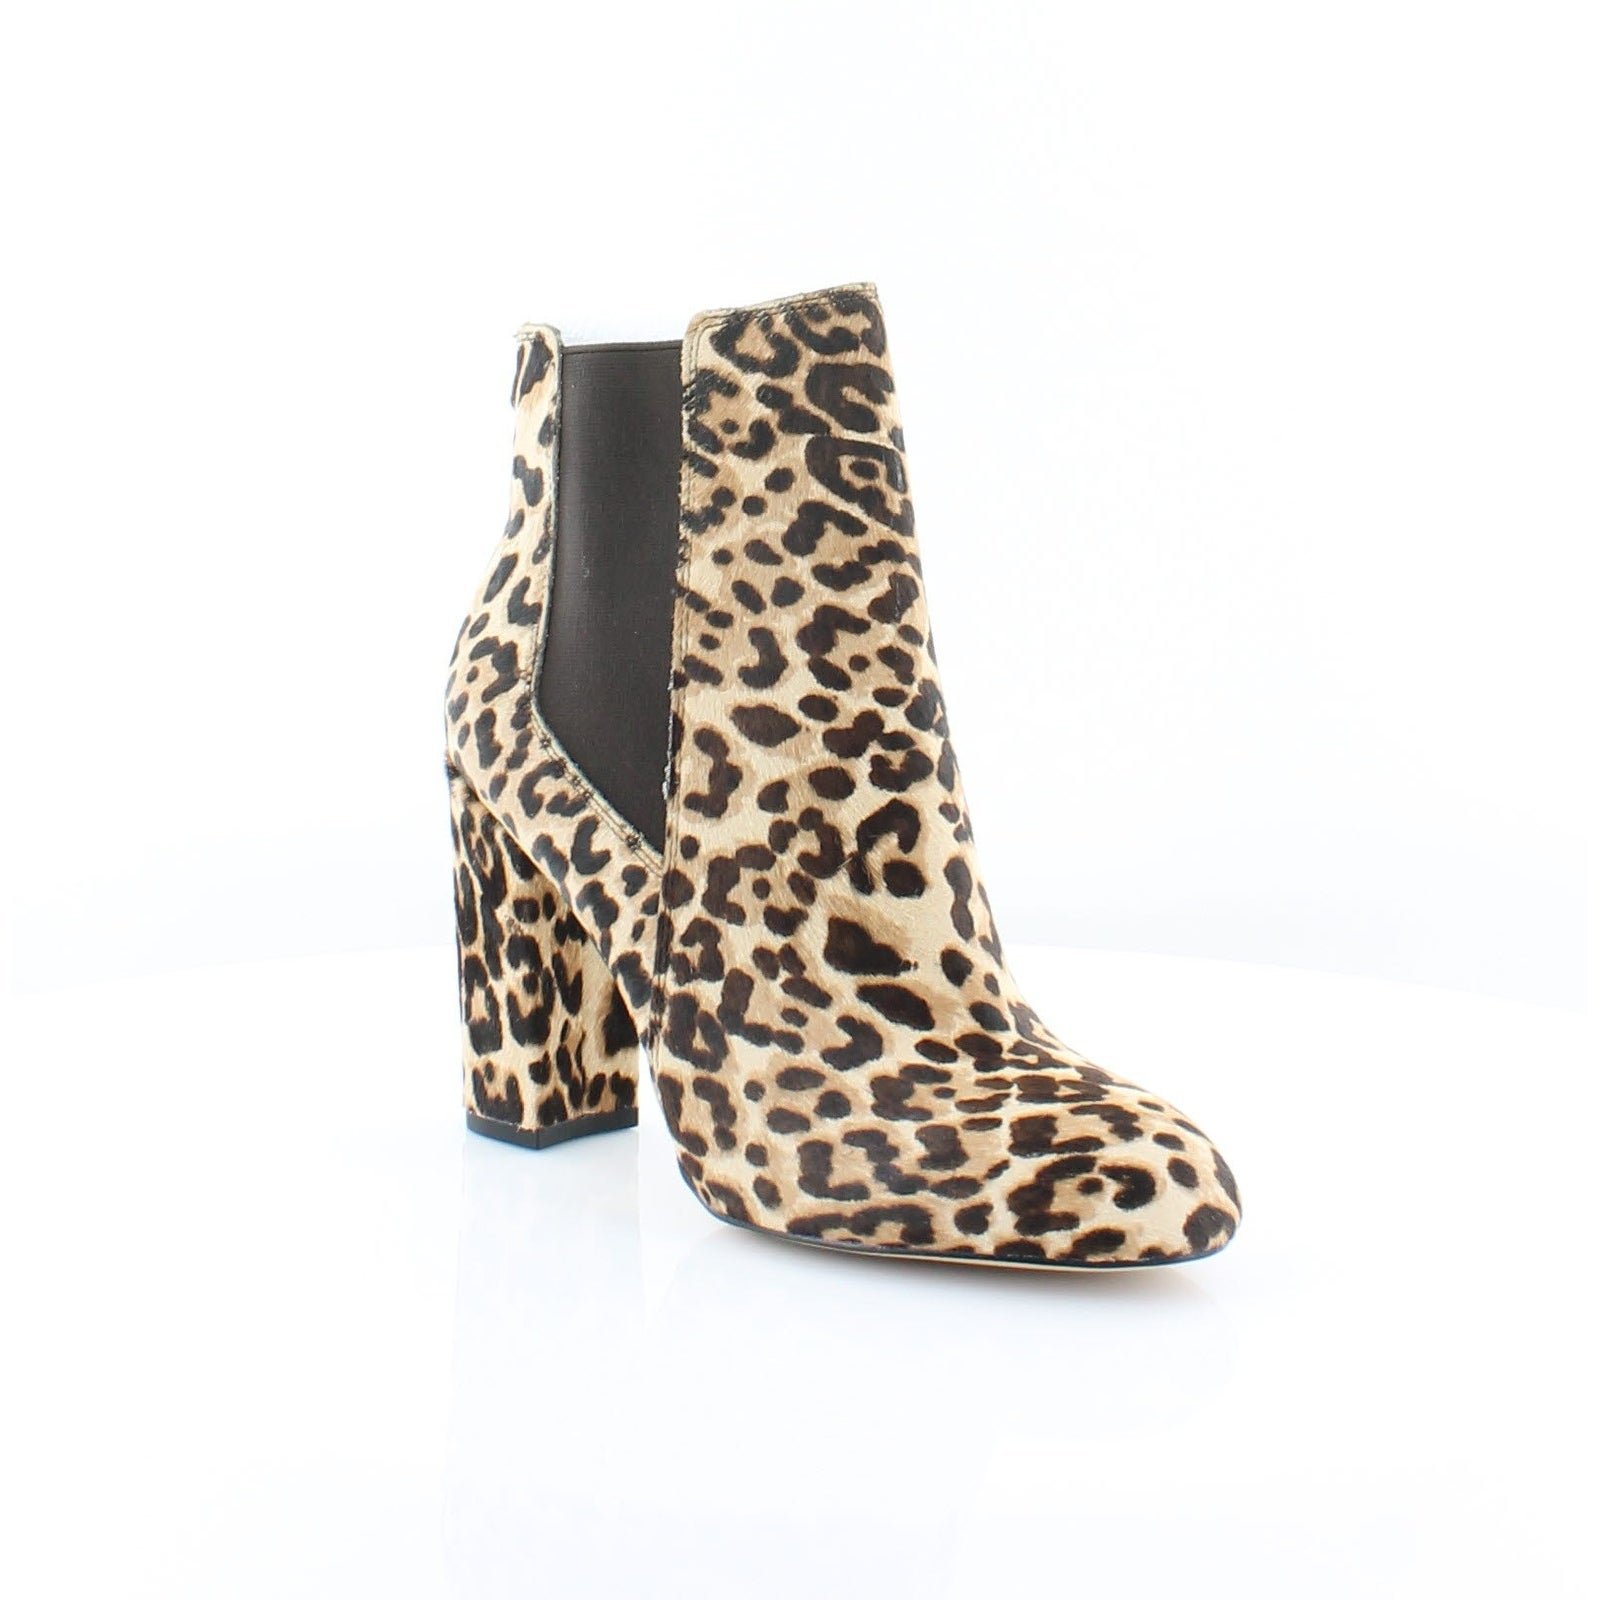 ccaac2bab Shop Sam Edelman Case Women s Boots Sand Leop - Free Shipping Today -  Overstock - 25656139